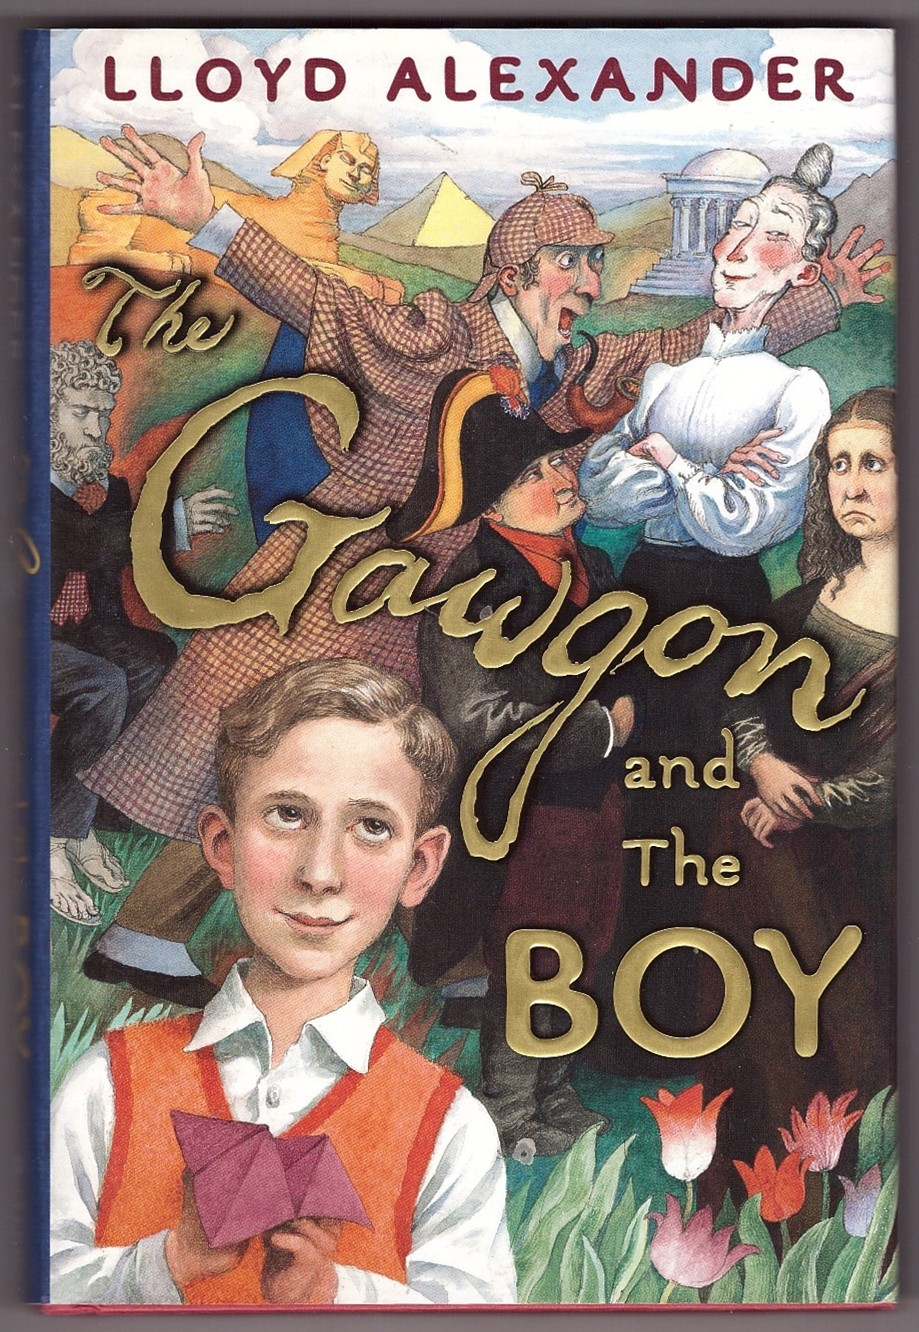 Image for The Gawgon and The Boy